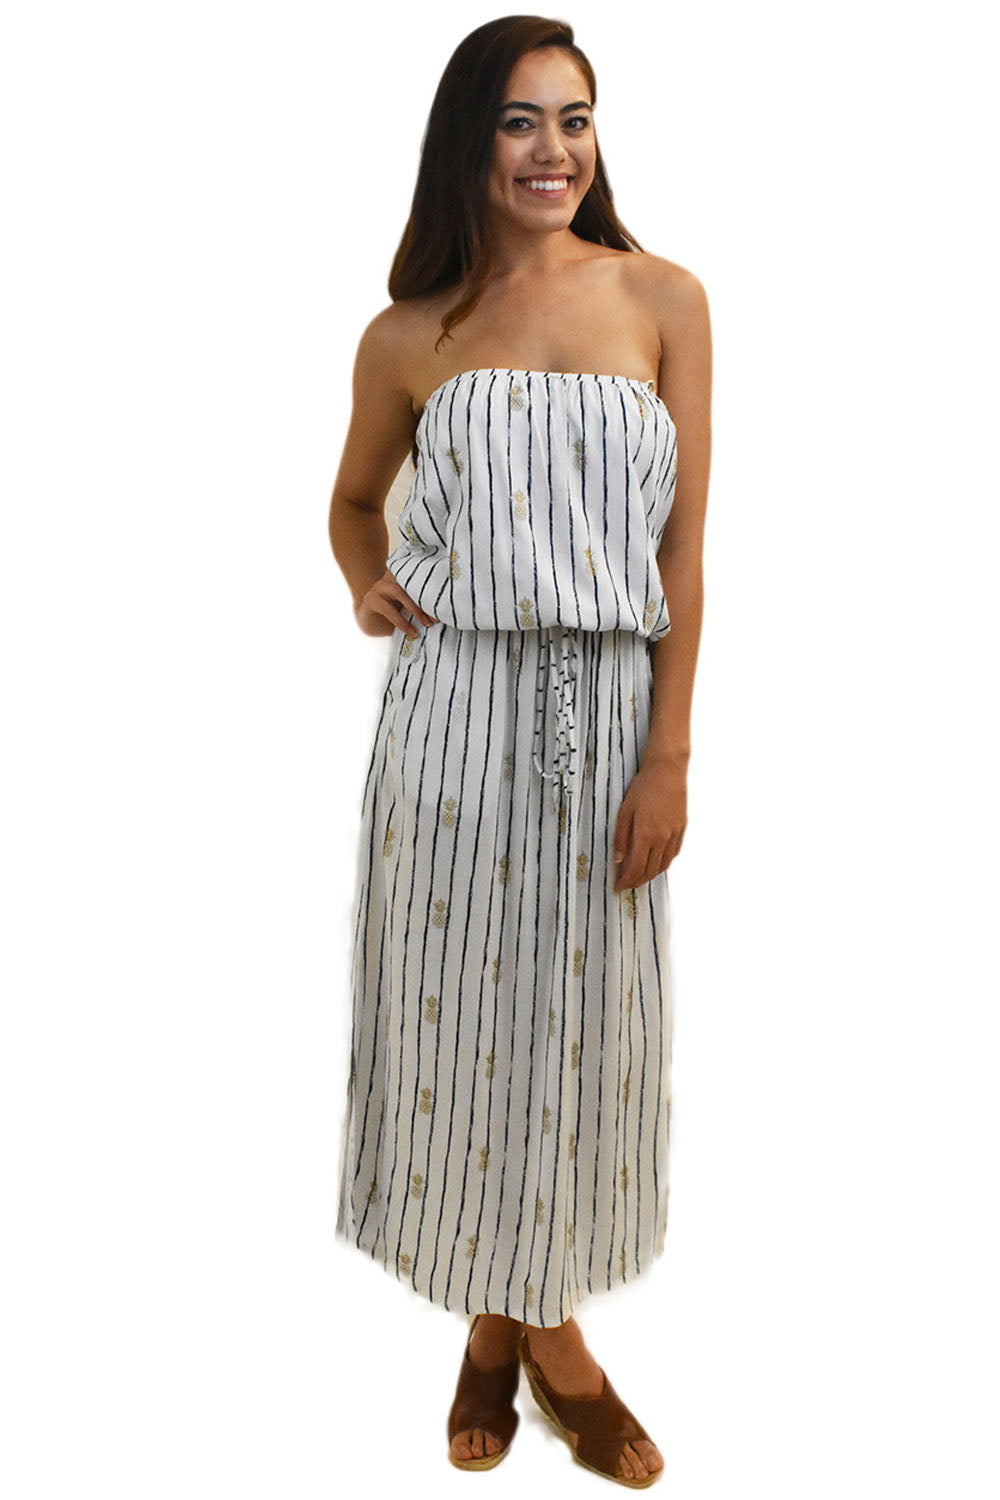 Kaipo Long Dress in Pineapple Print White/Navy